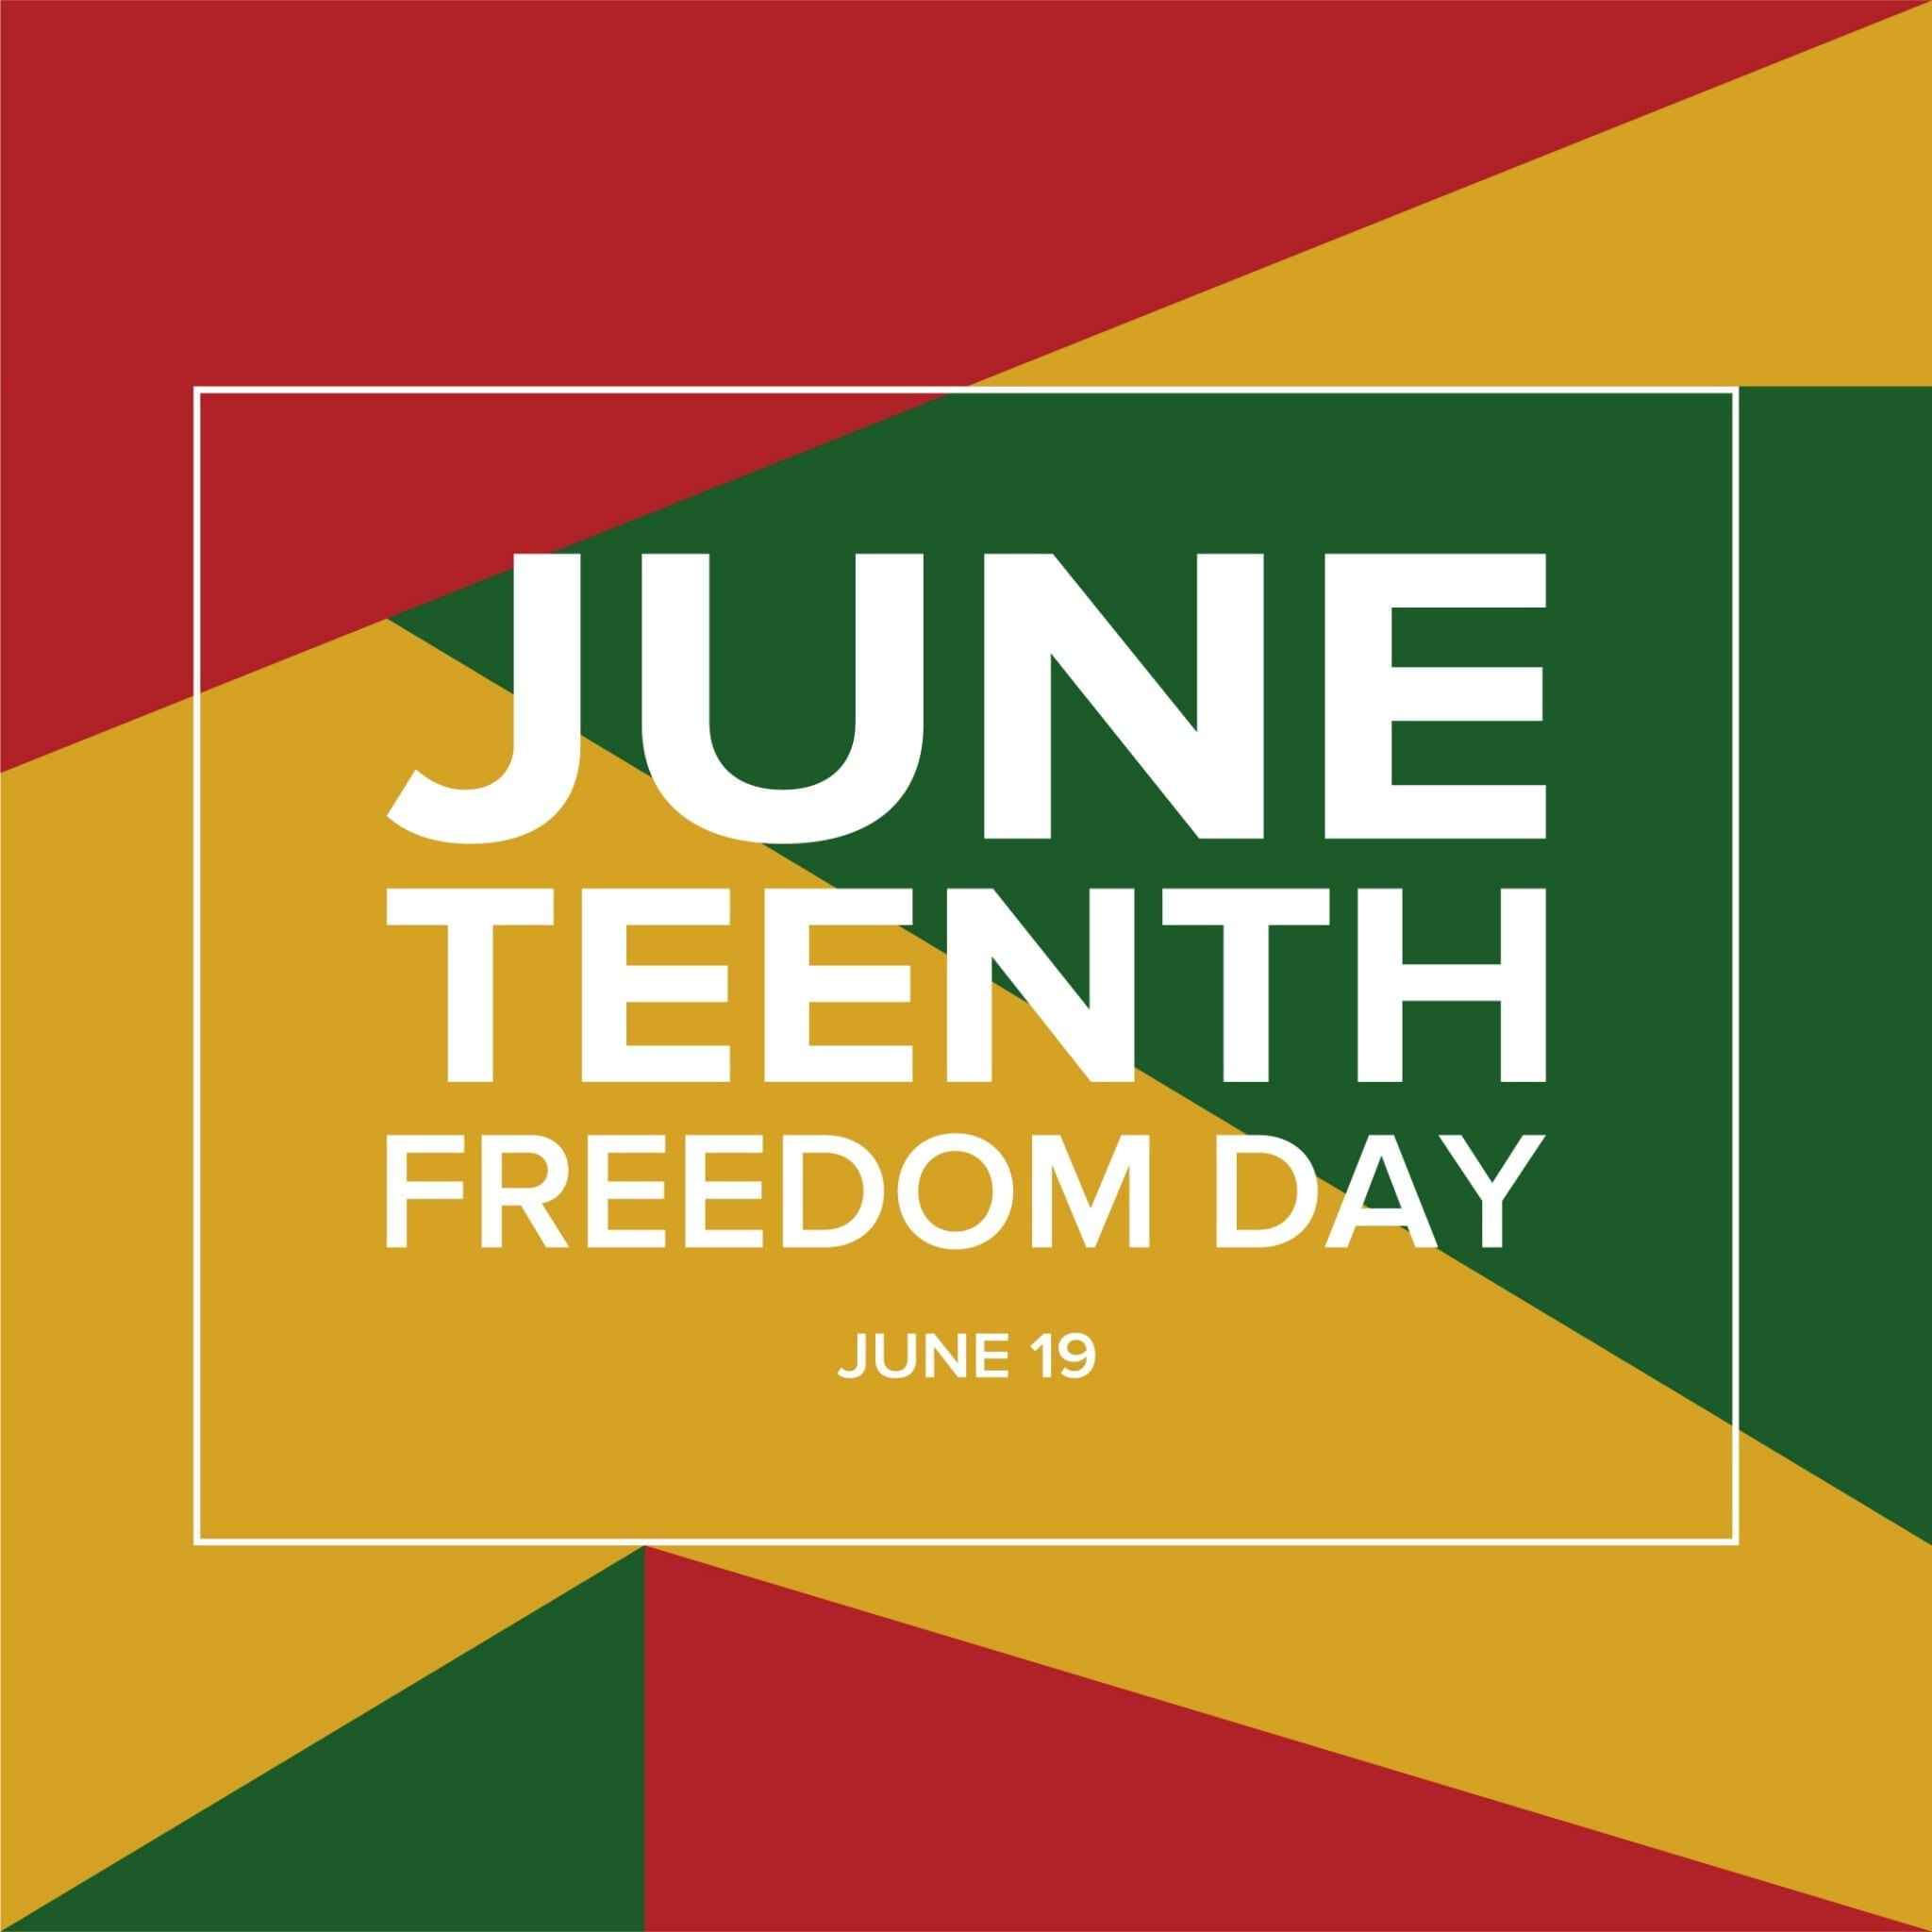 Juneteenth: The Second U.S. Independence Day